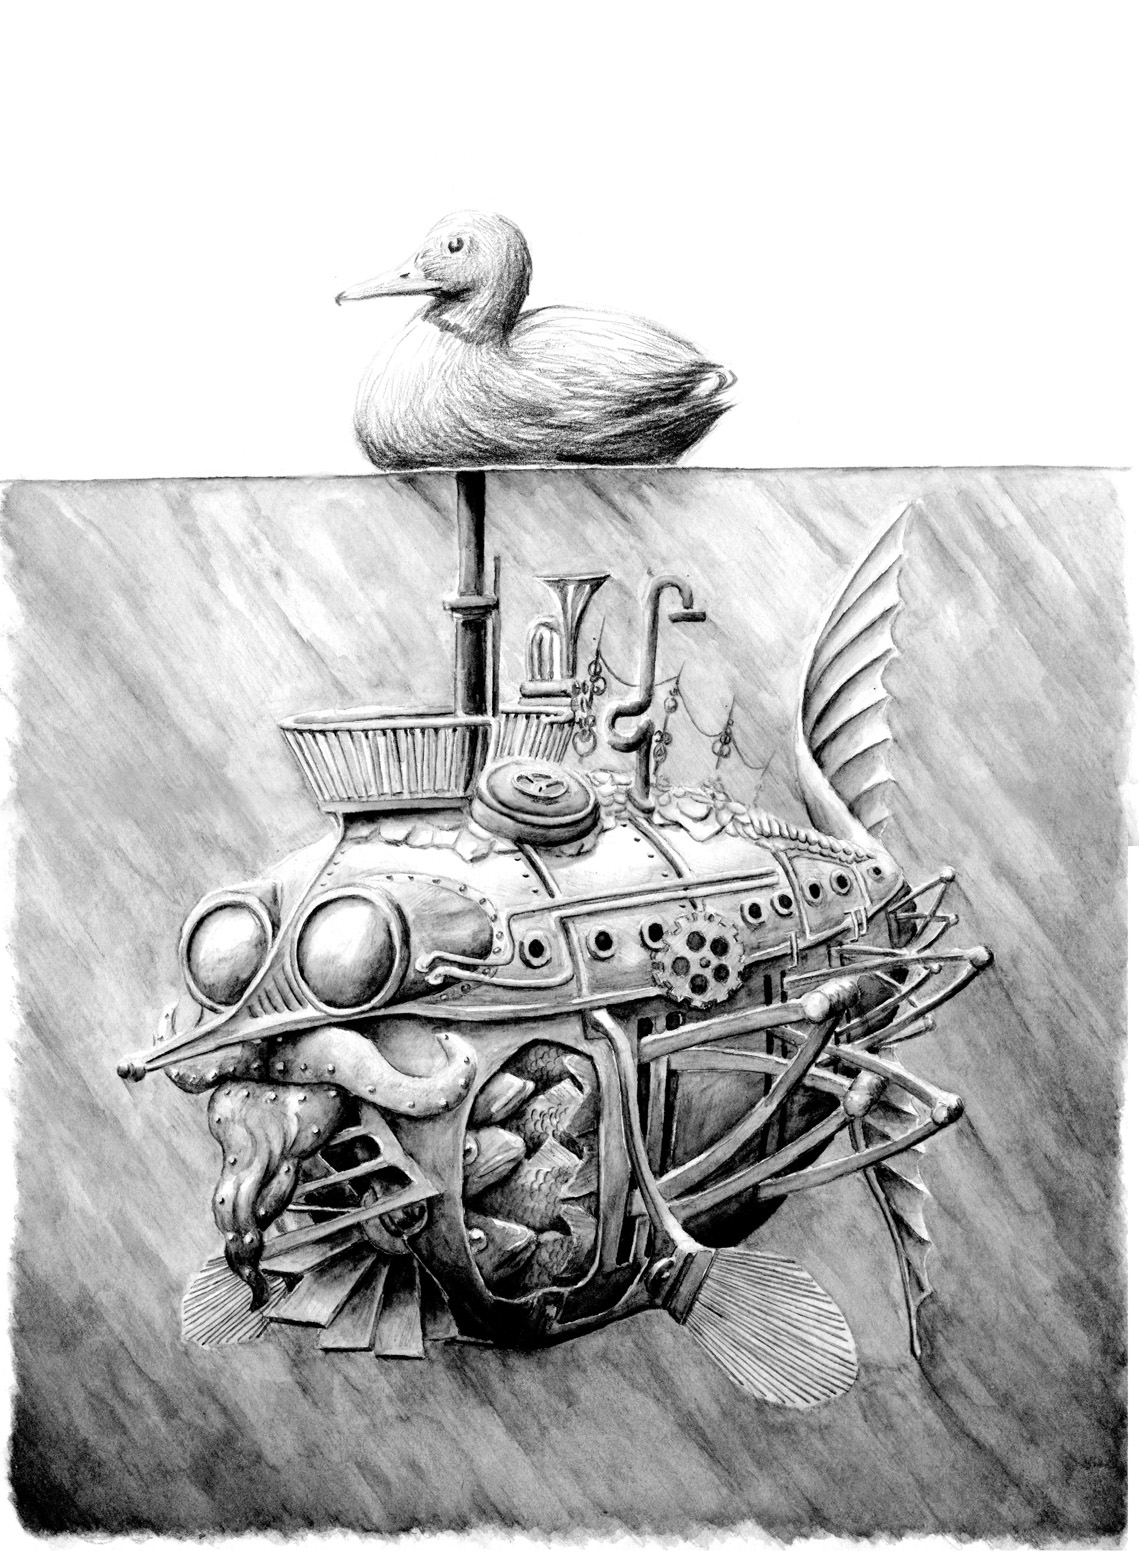 11-Duck-Redmer-Hoekstra-Drawing-Fantastic-and-Surreal-World-of-Hoekstra-www-designstack-co